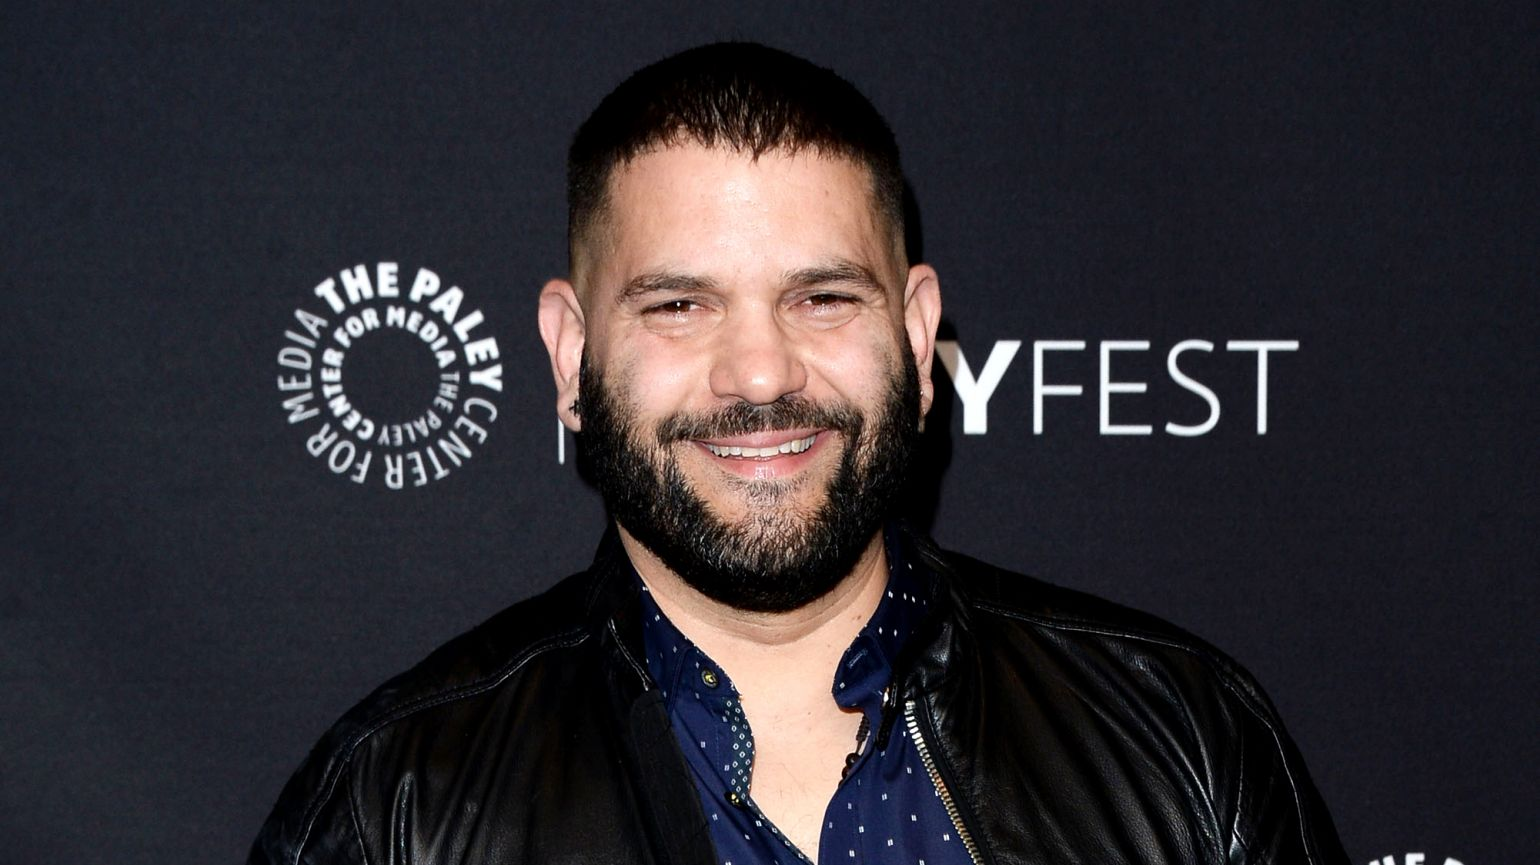 062116-celebs-i-m-coming-out-guillermo-diaz.jpg